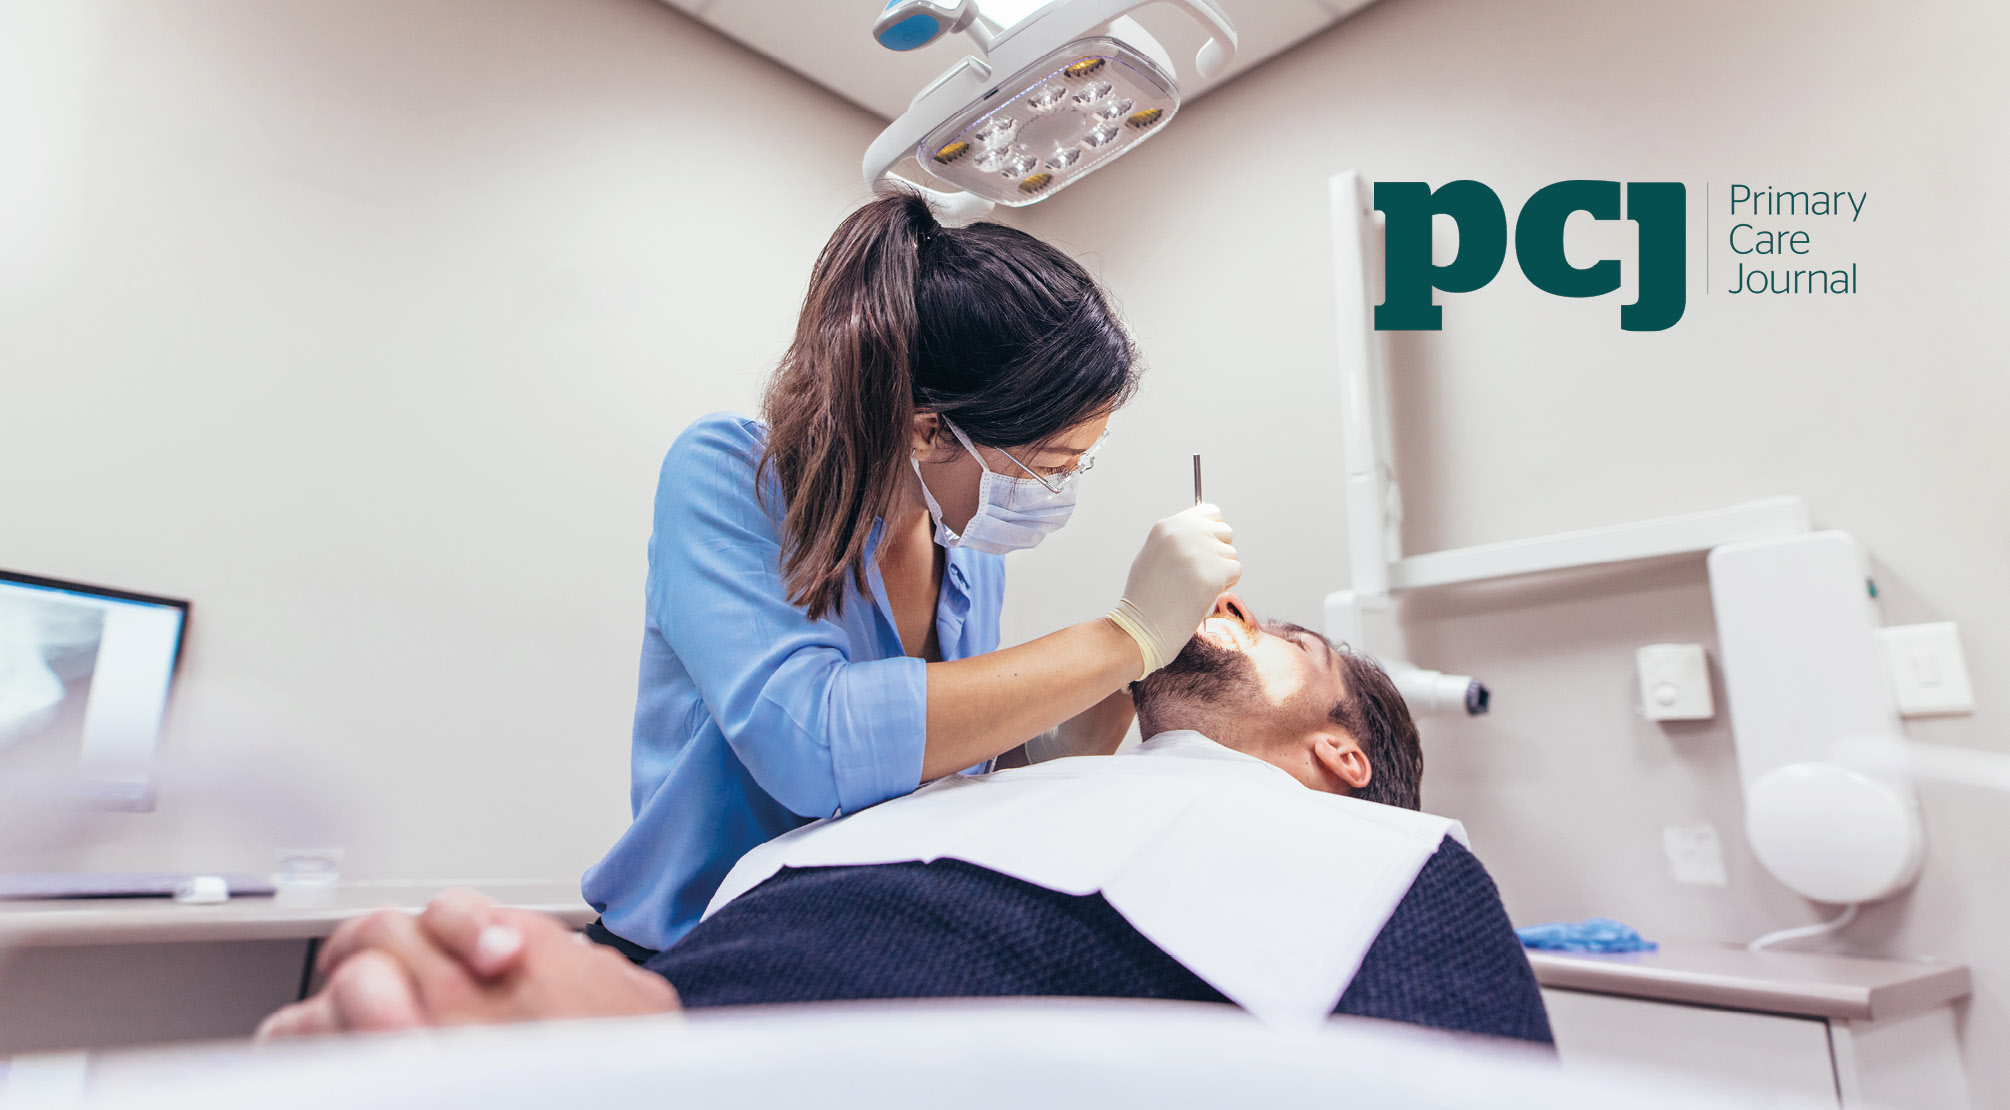 Dentists are deserting the NHS and poorest patients are paying the price